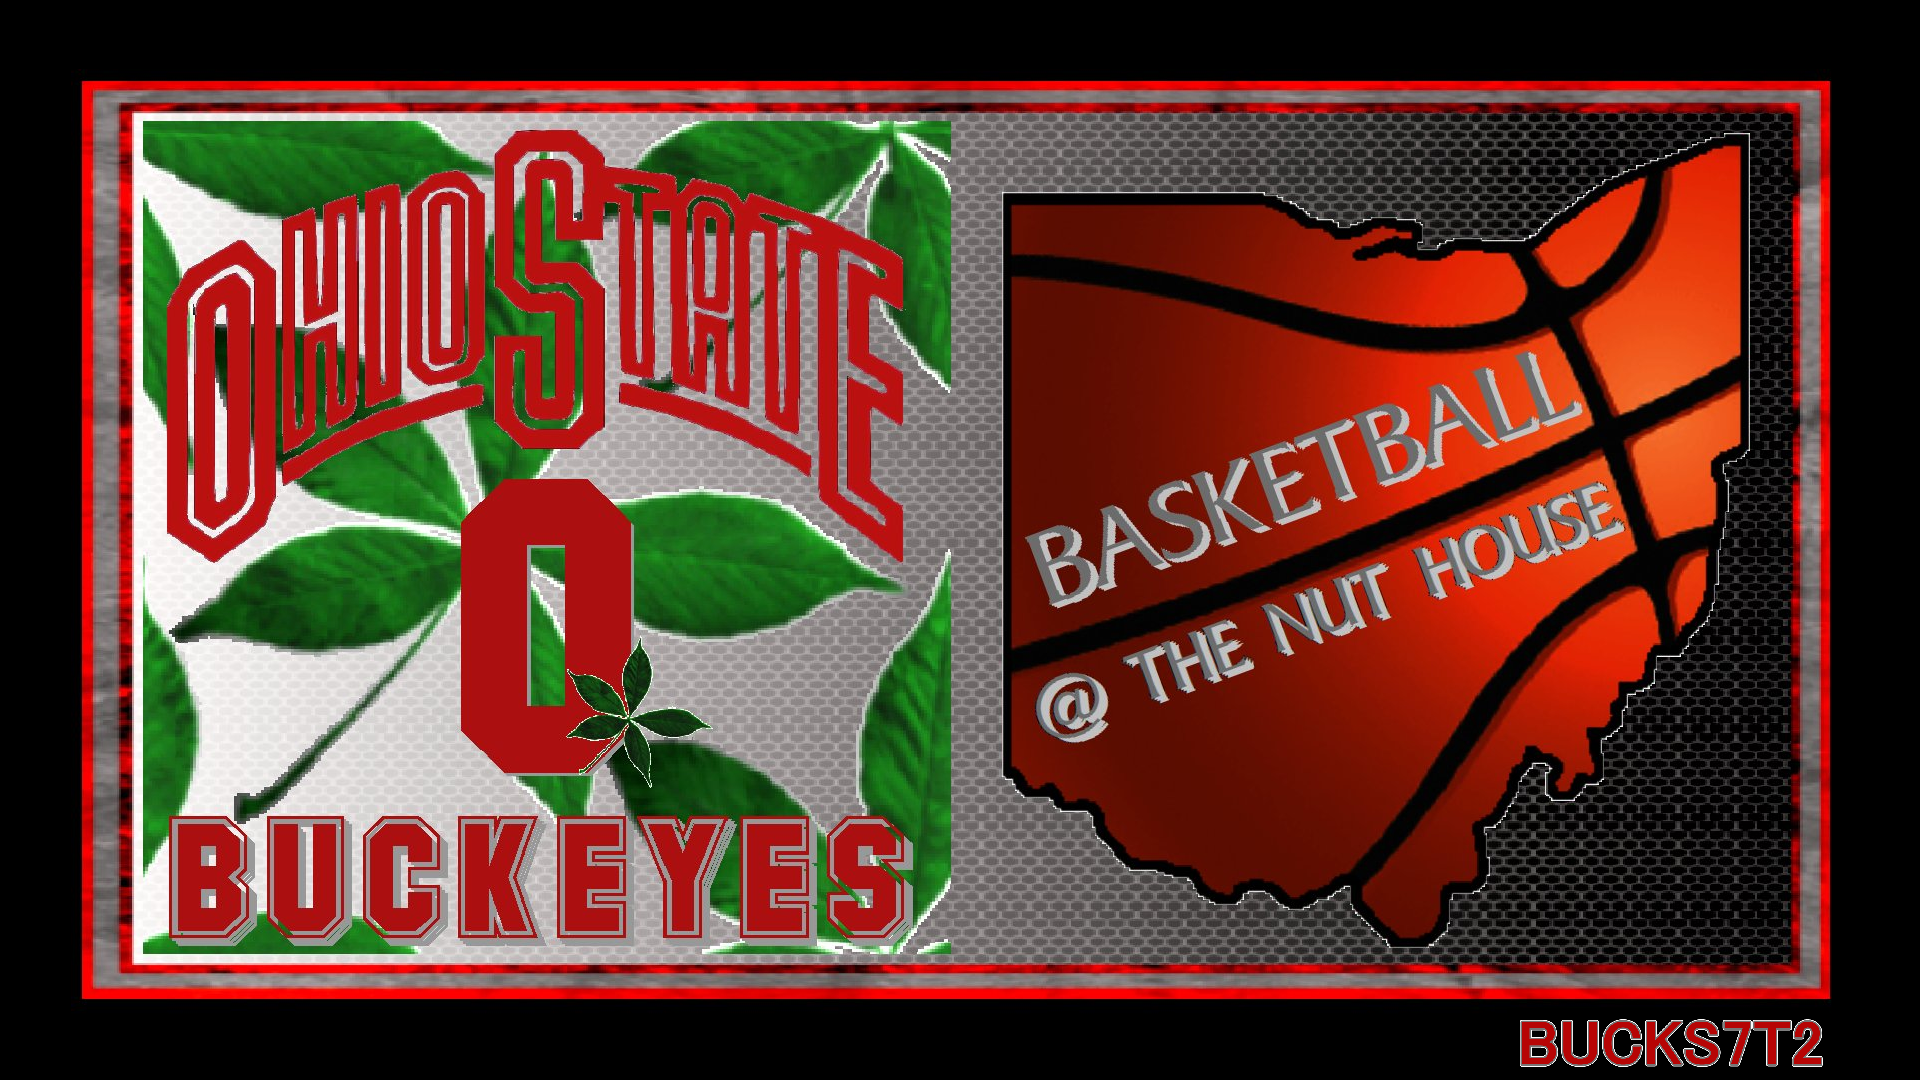 OHIO STATE BUCKEYES BASKETBALL @ THE NUT HOUSE